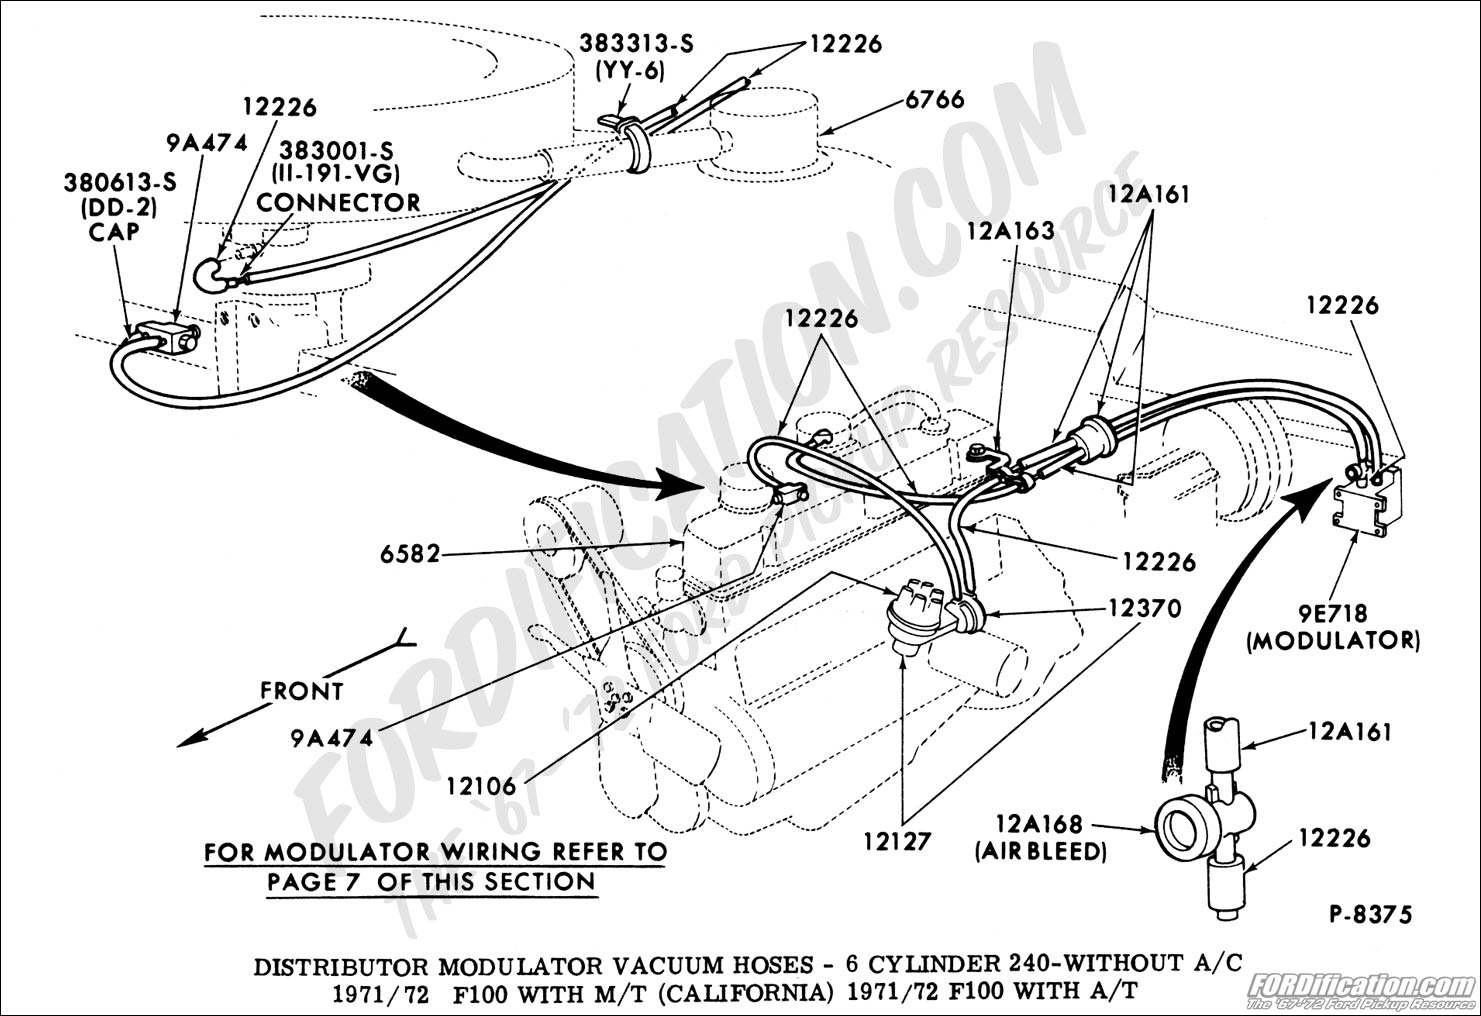 1977 Pontiac Trans Am Wiring Diagram likewise 1964 Chrysler Newport Wiring Diagram moreover Honeywell V8043f1036 Wiring Diagram furthermore 454 Chevrolet Engine Diagram further P 0996b43f80cb0b49. on chevy 350 distributor installation diagram